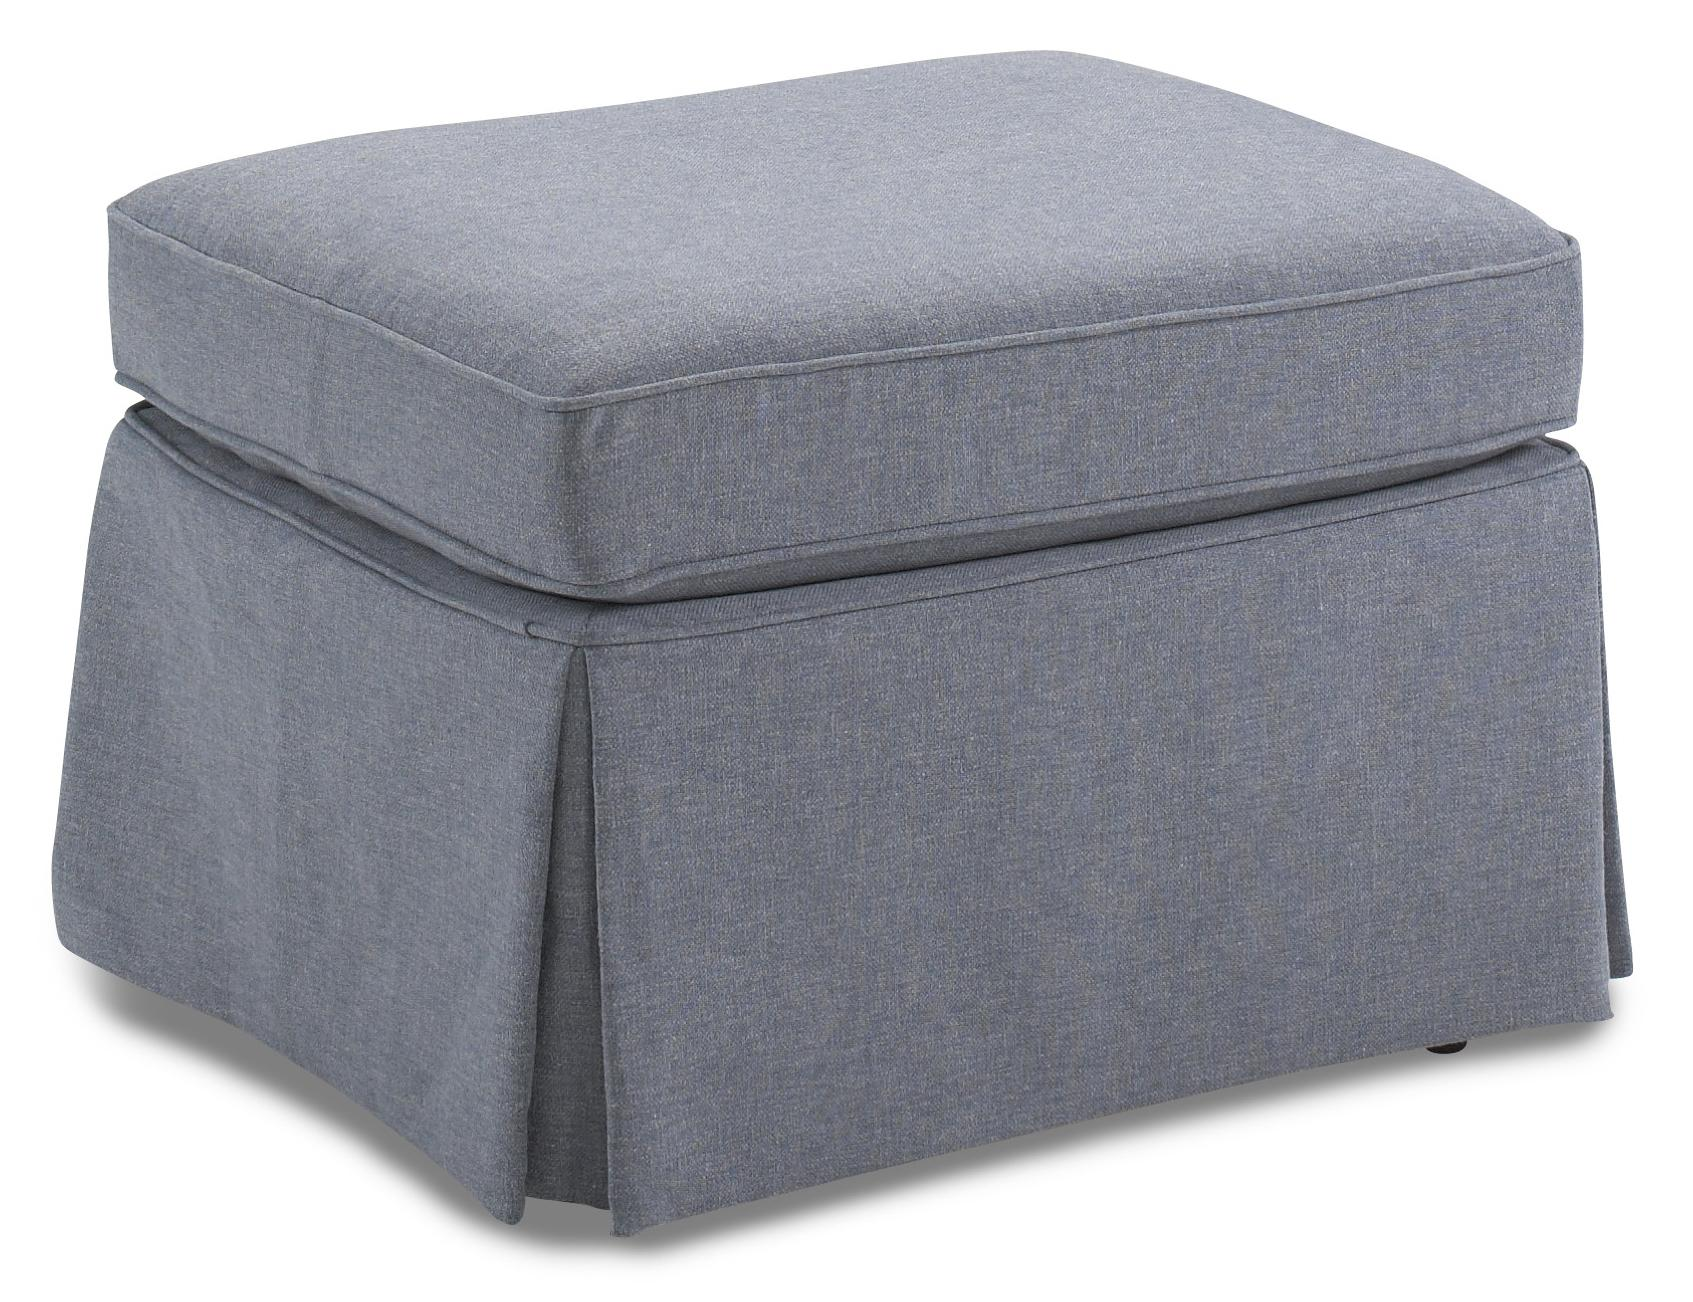 Storytime Swivel Chairs and Ottomans Ottoman by Best Chairs Storytime Series at Best Home Furnishings